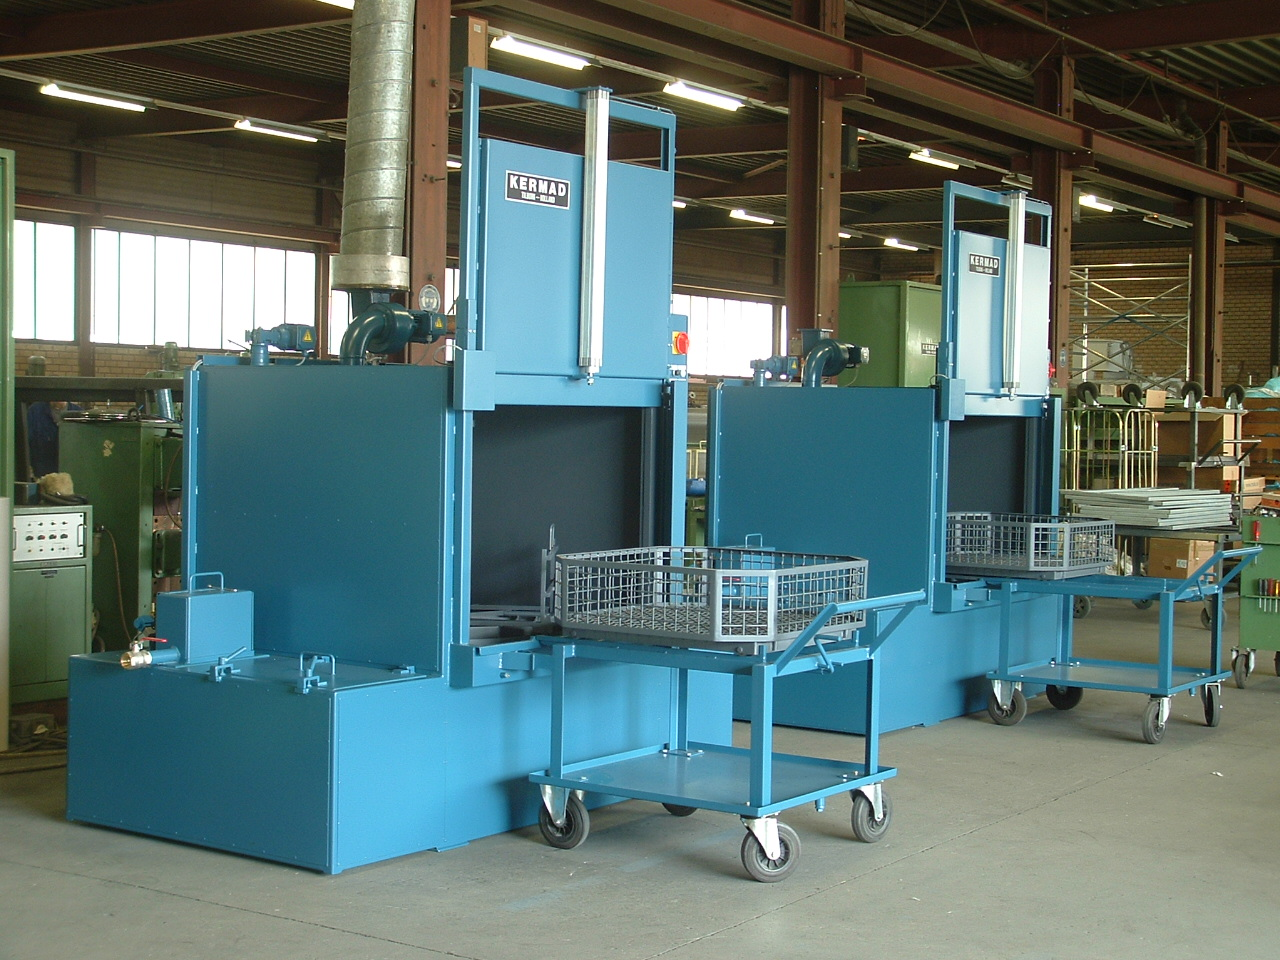 Kermad Industrial Cleaning Machine